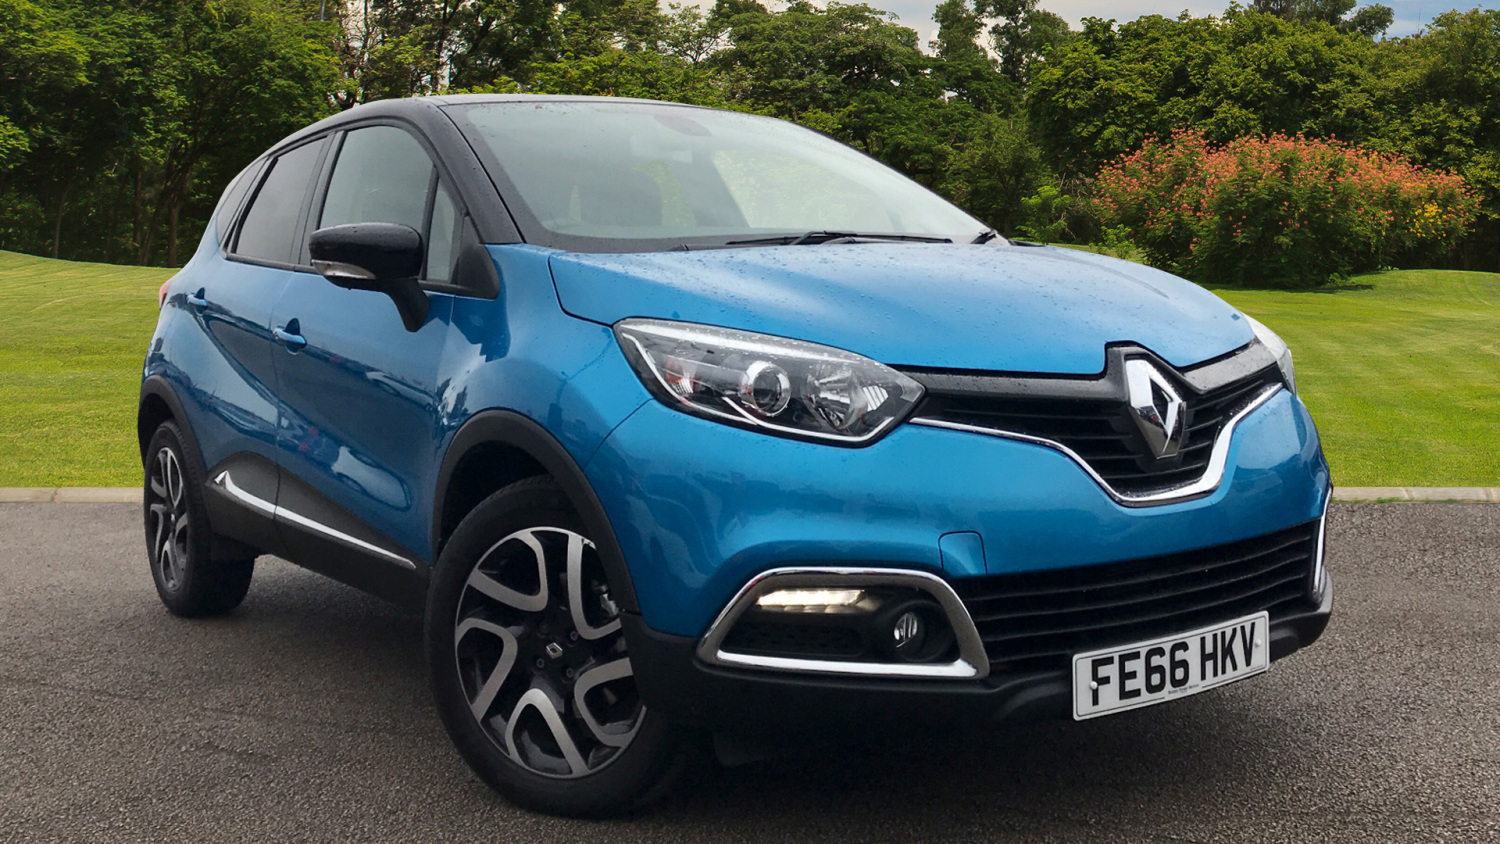 used renault captur 1 5 dci 110 dynamique s nav 5dr diesel hatchback for sale bristol street. Black Bedroom Furniture Sets. Home Design Ideas